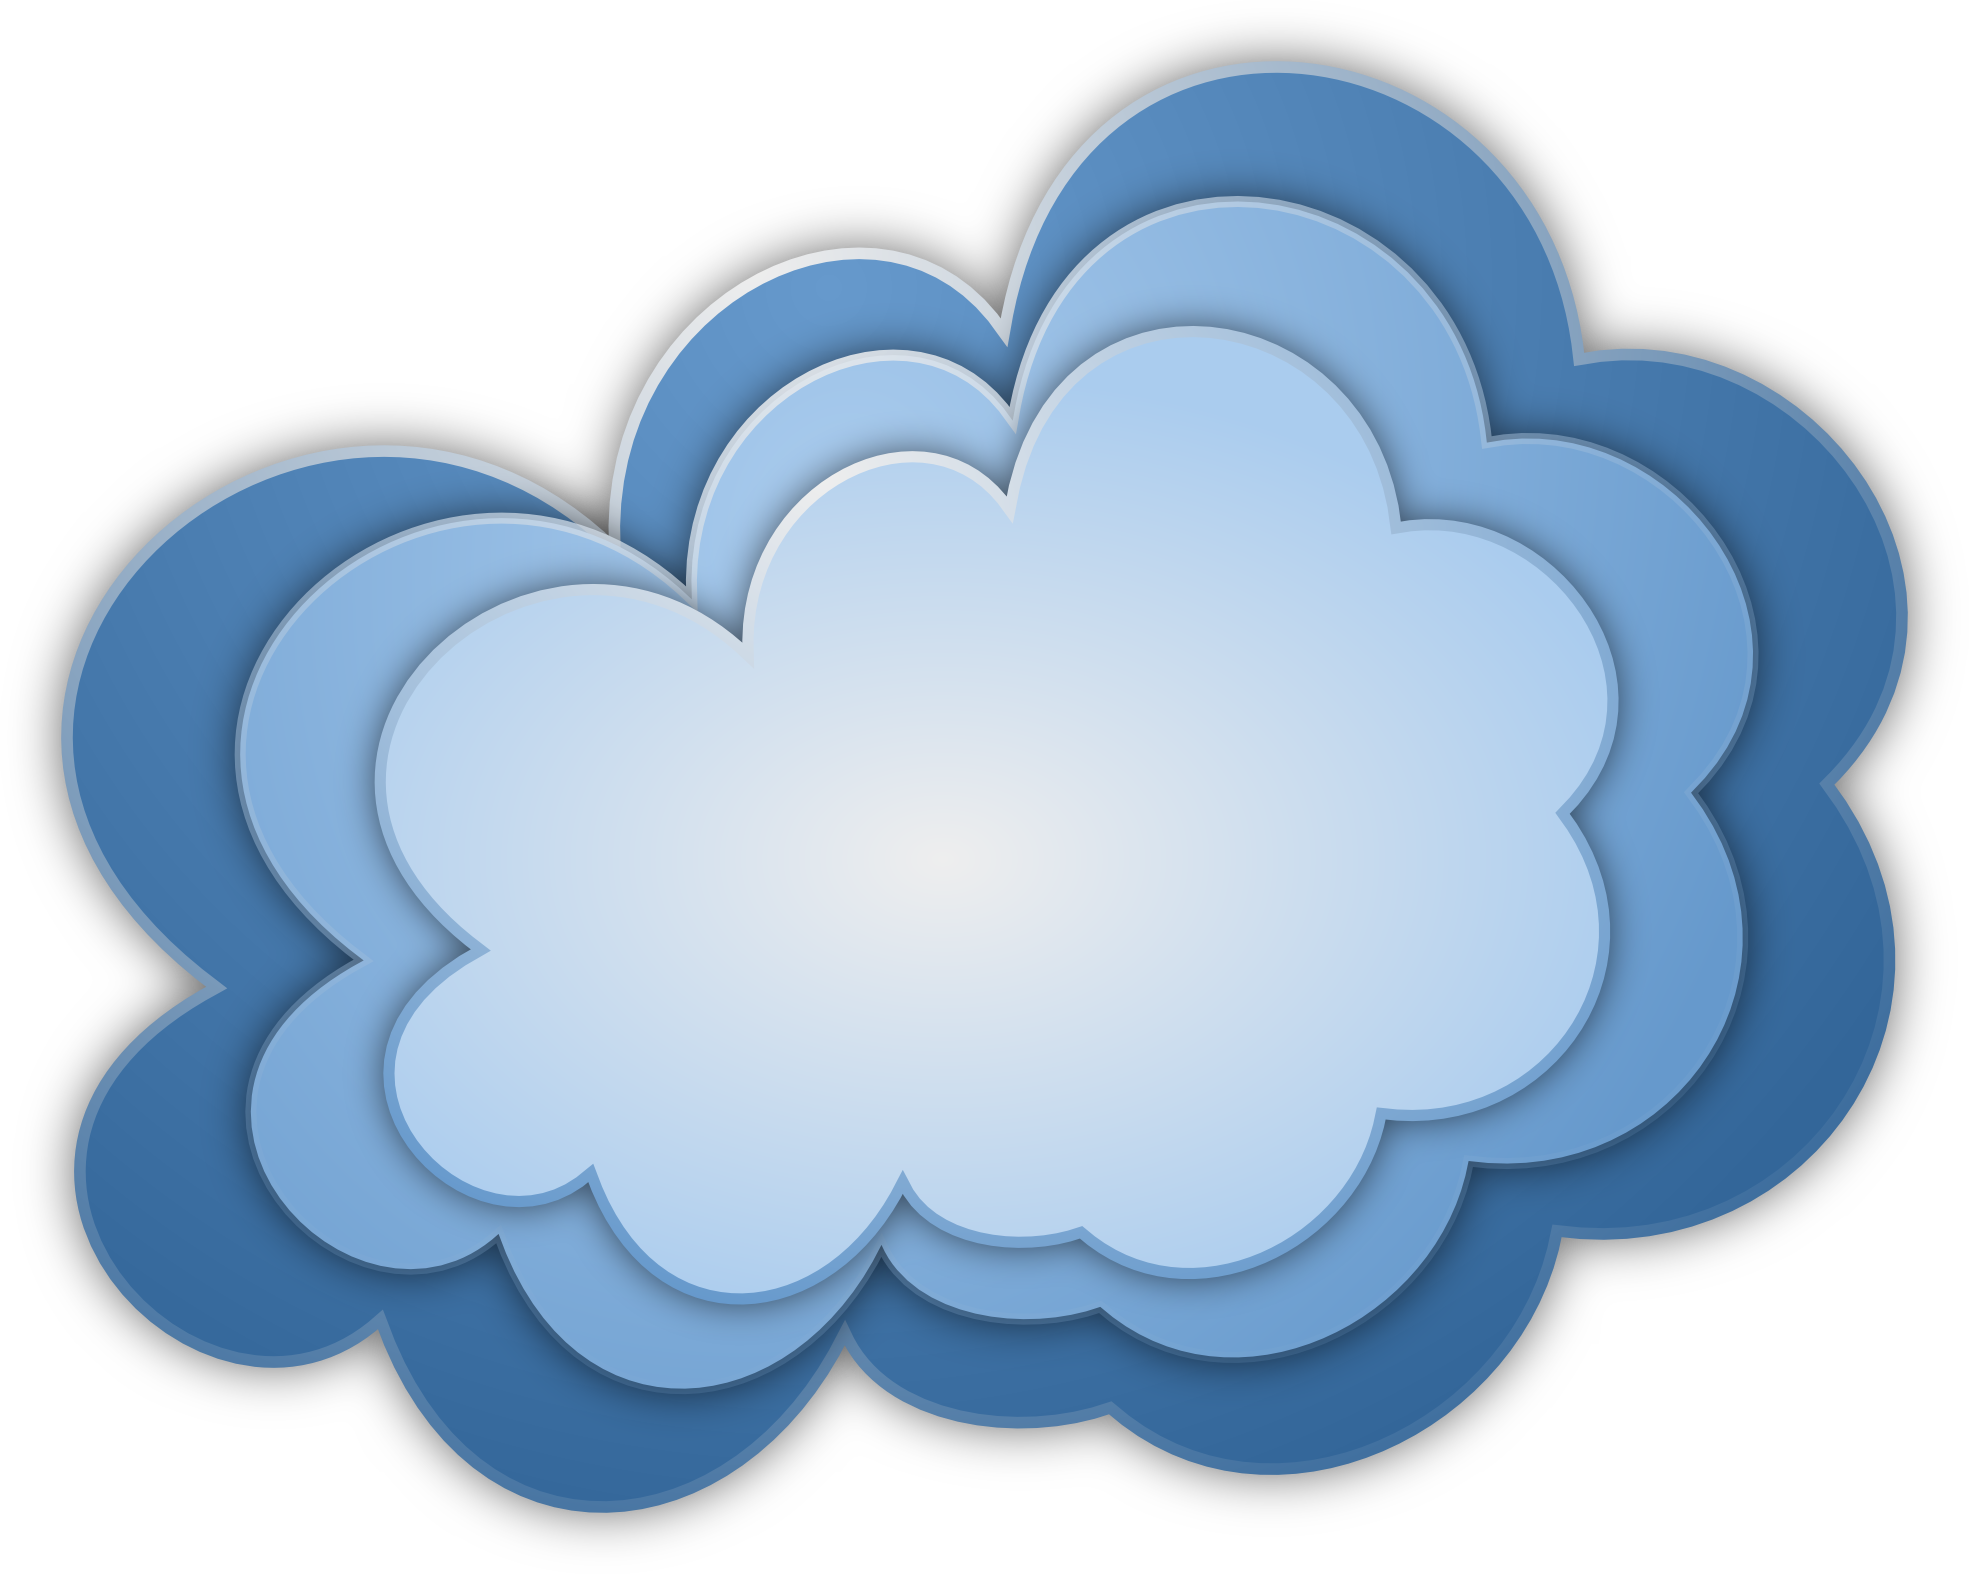 png freeuse download CLOUD VECTOR FREE